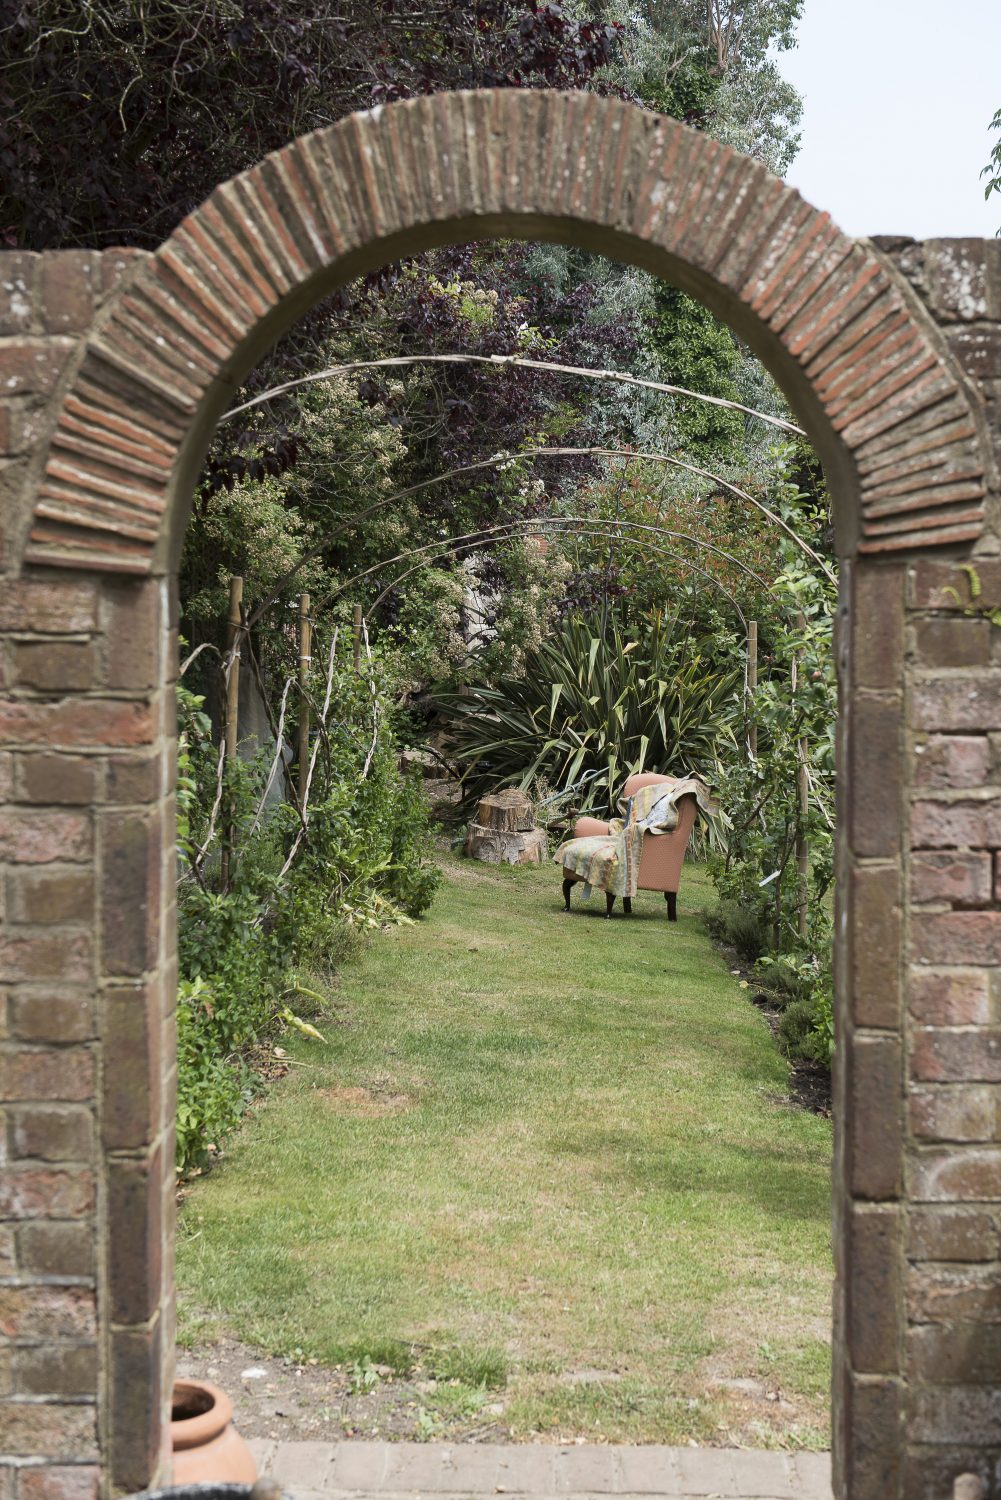 An arch echoes the entrance to the house